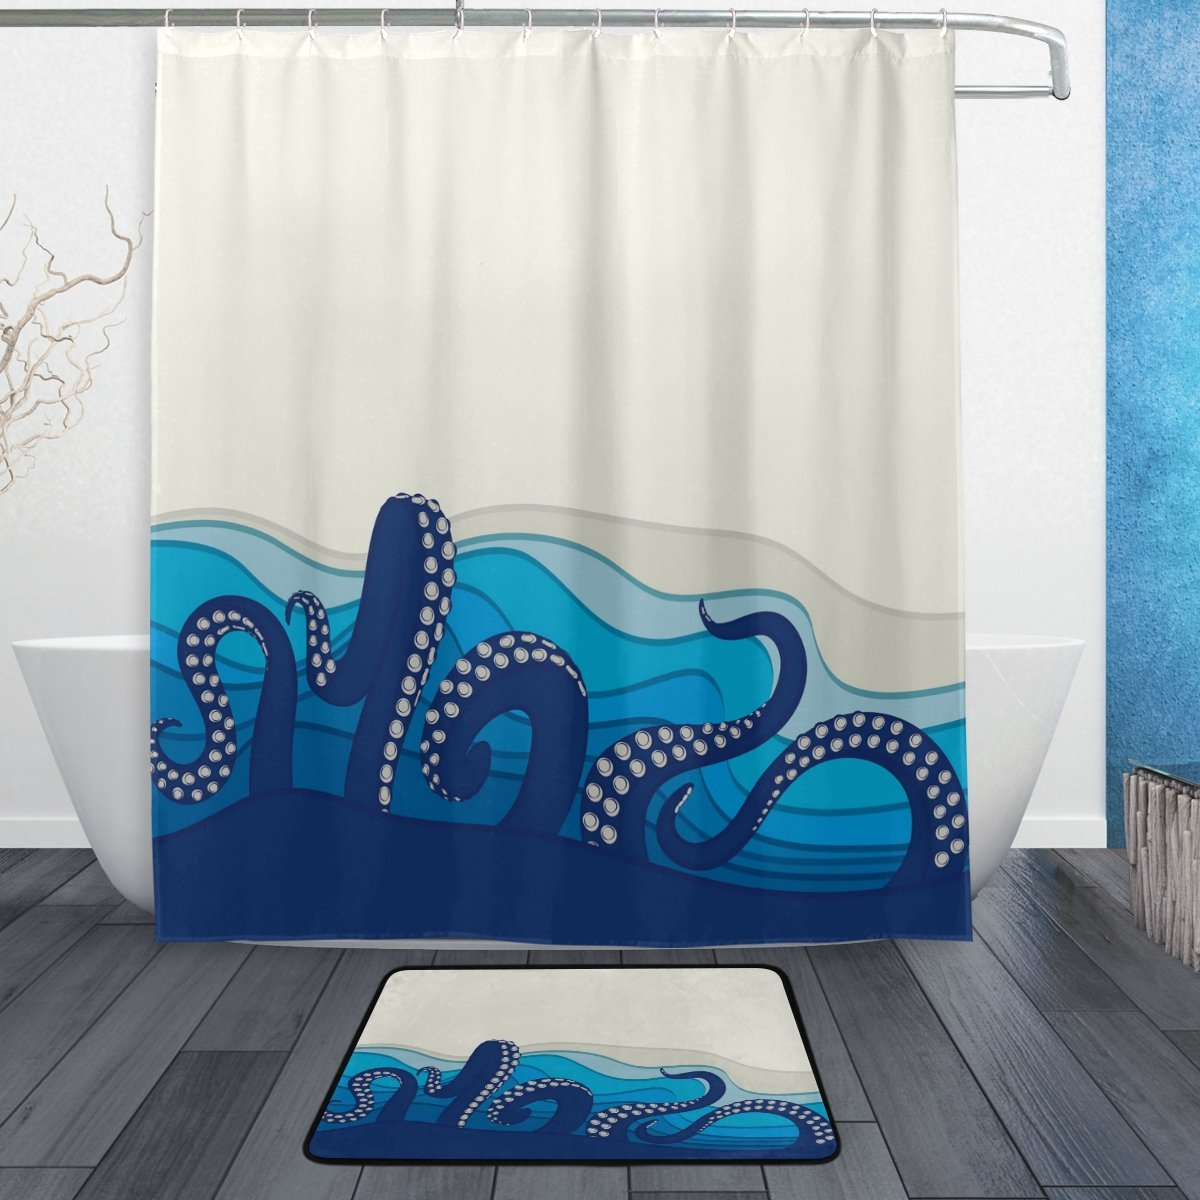 Buy The Kraken Shower Curtain And Get Free Shipping On AliExpress